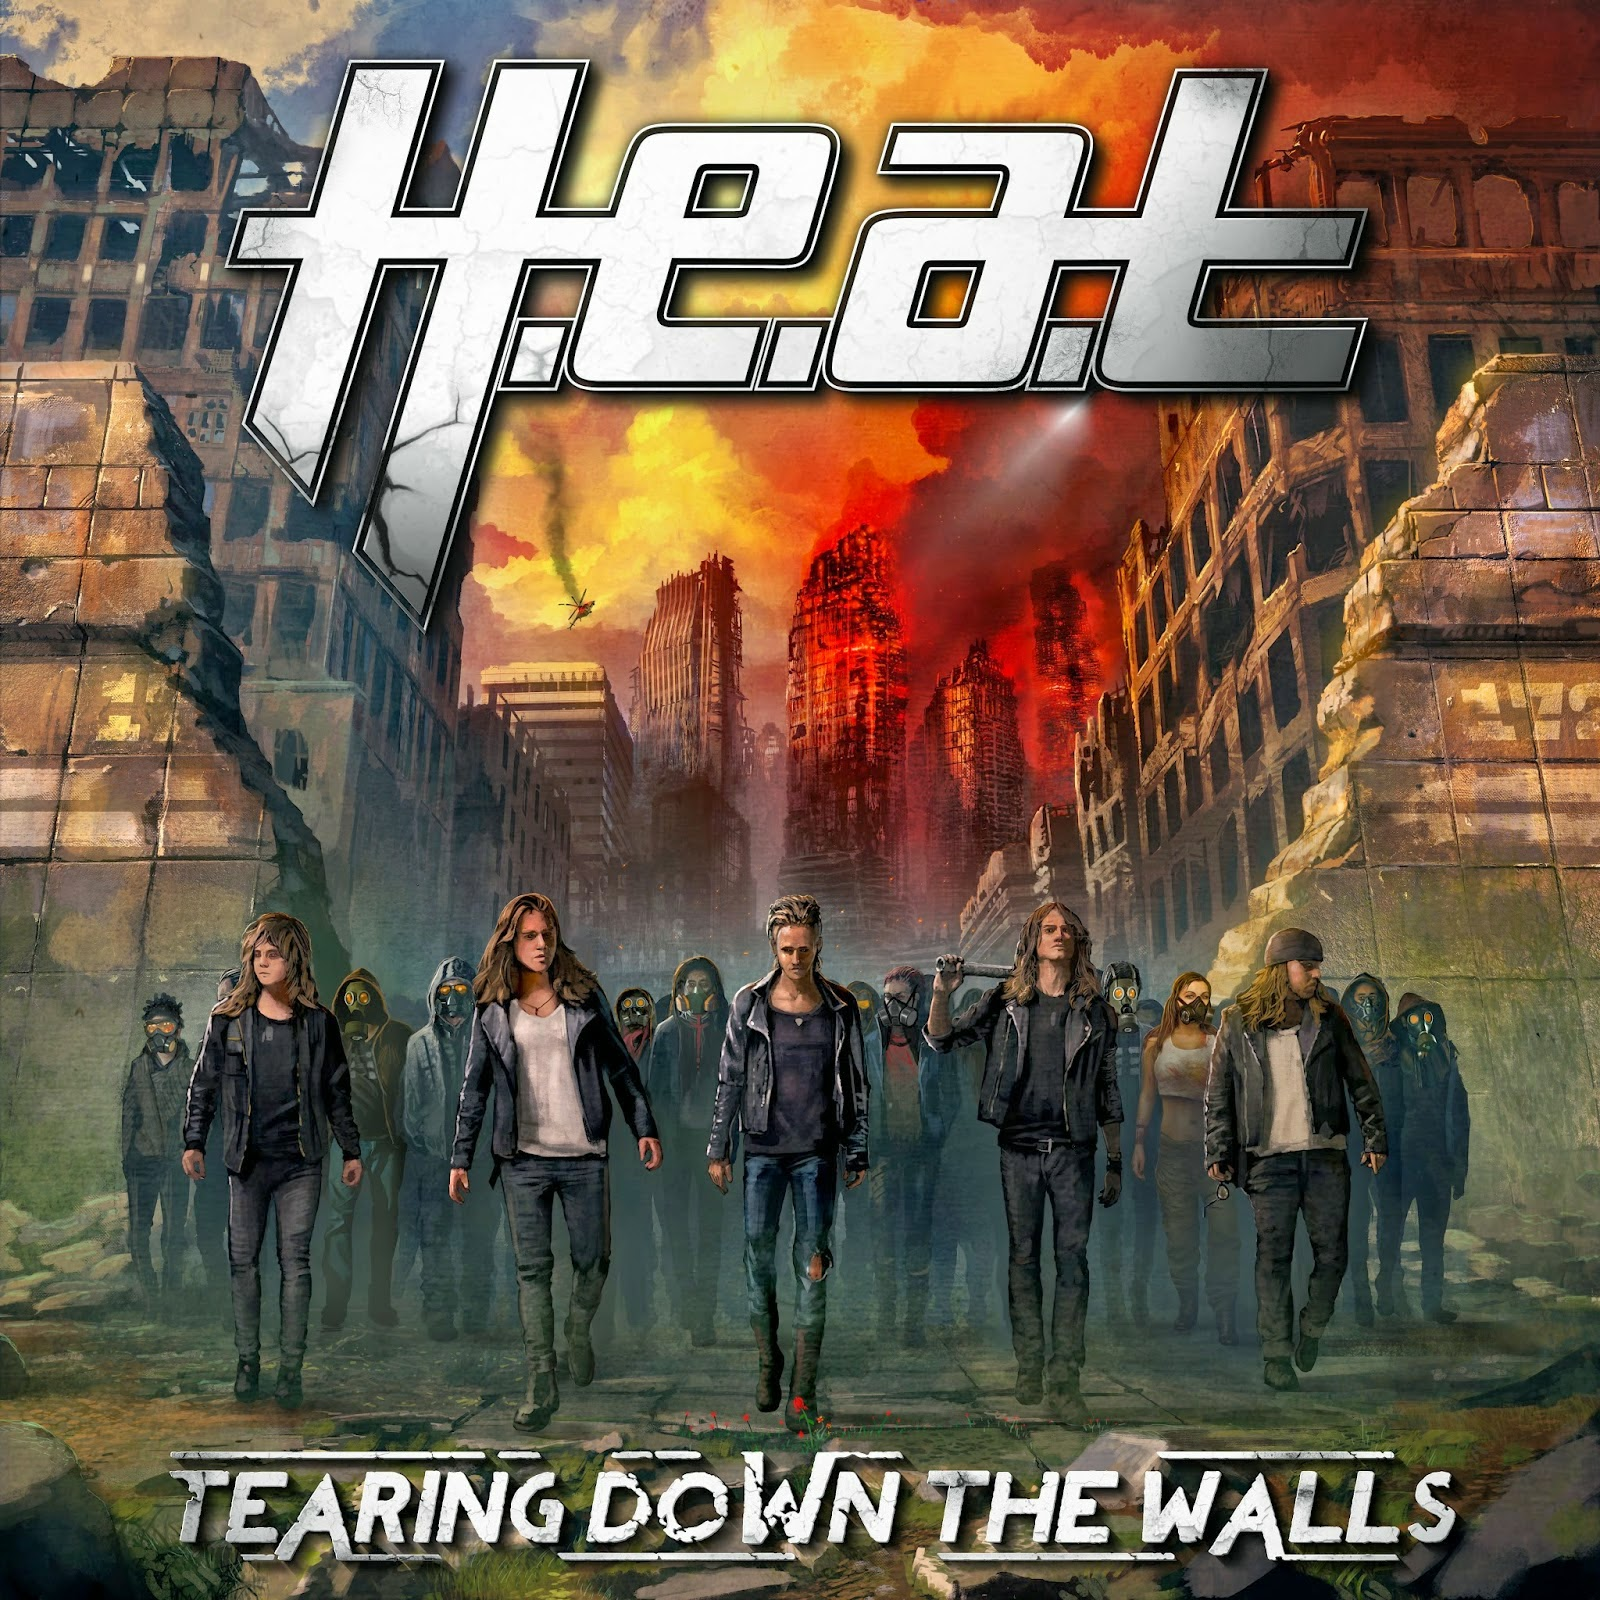 http://rock-and-metal-4-you.blogspot.de/2014/04/cd-review-heat-tearing-down-walls.html